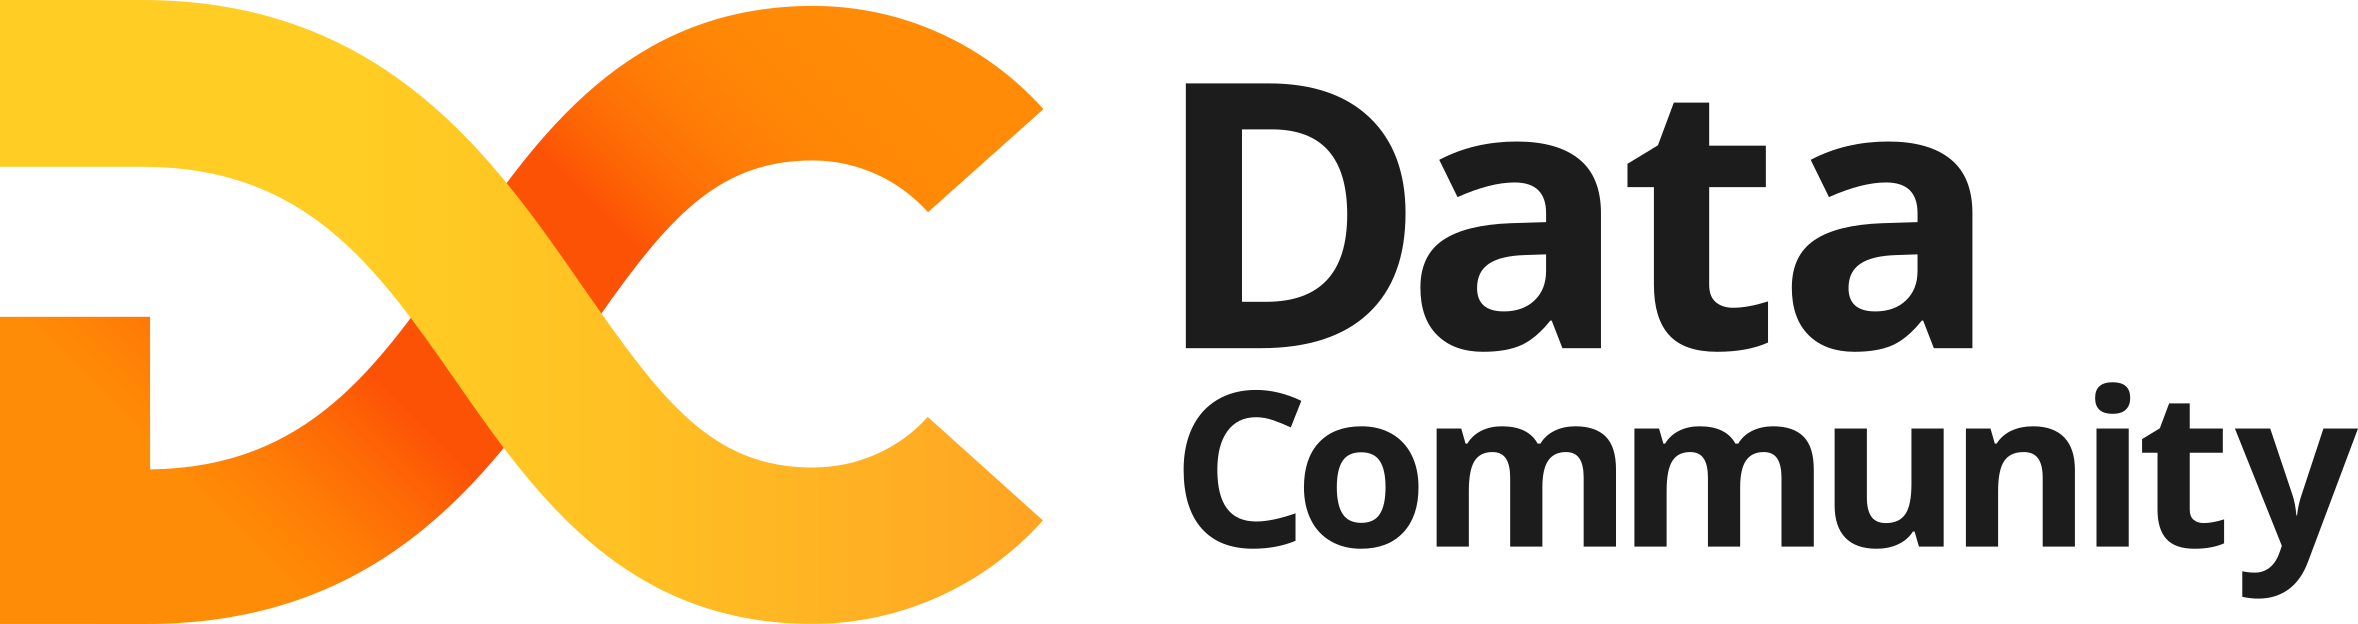 Data Community Poland